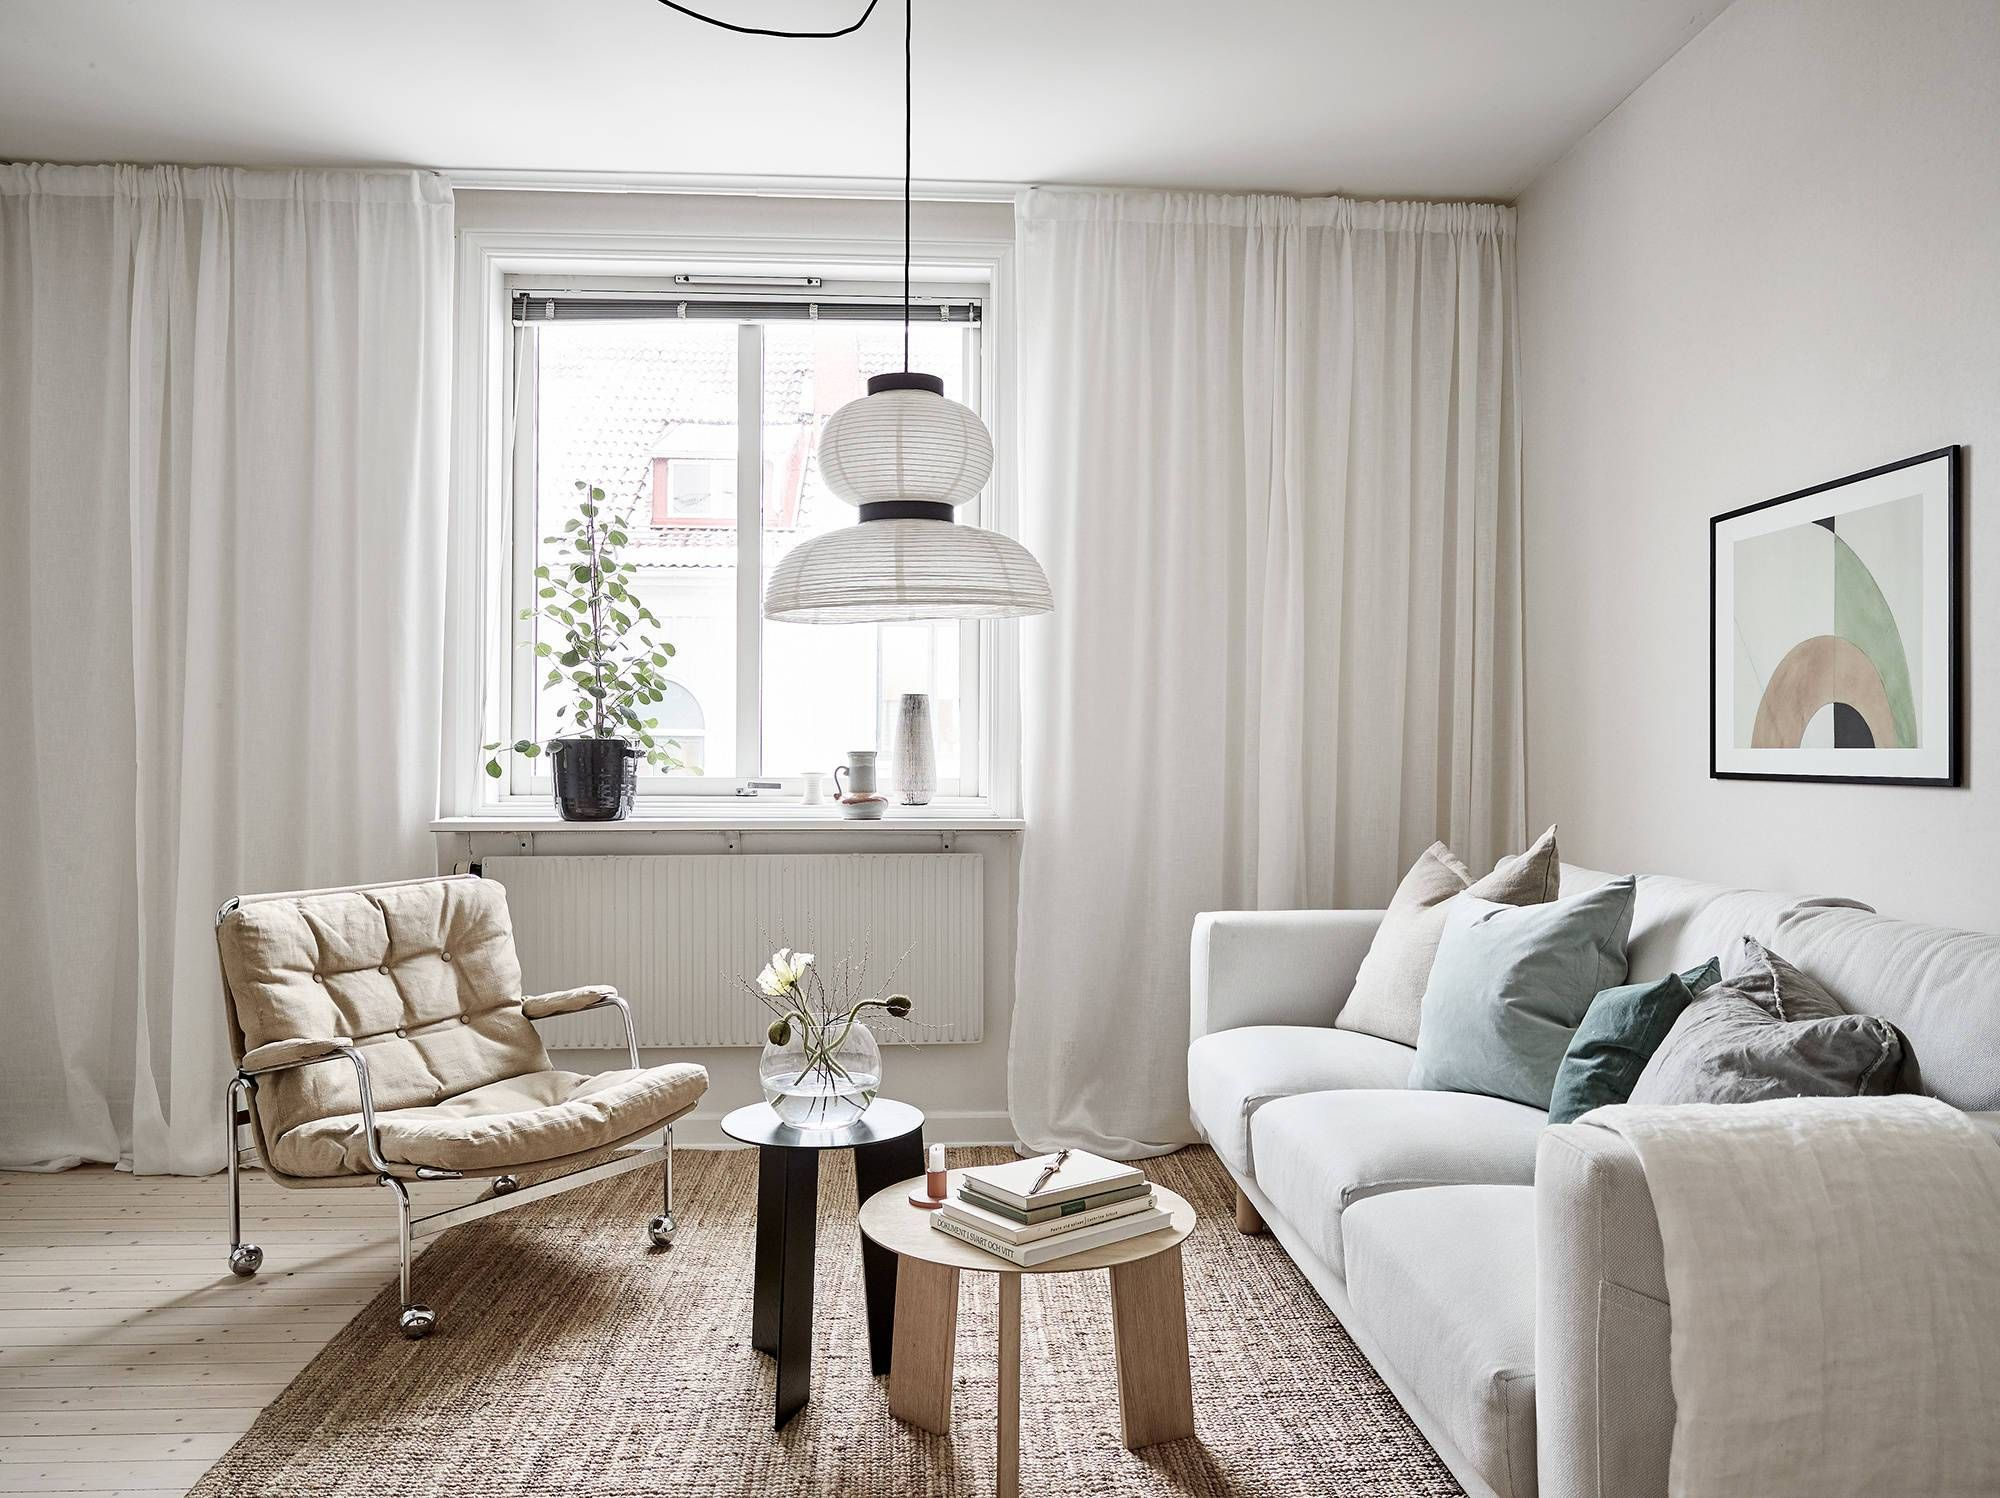 Get the look: Living room in a warm palette COCO LAPINE